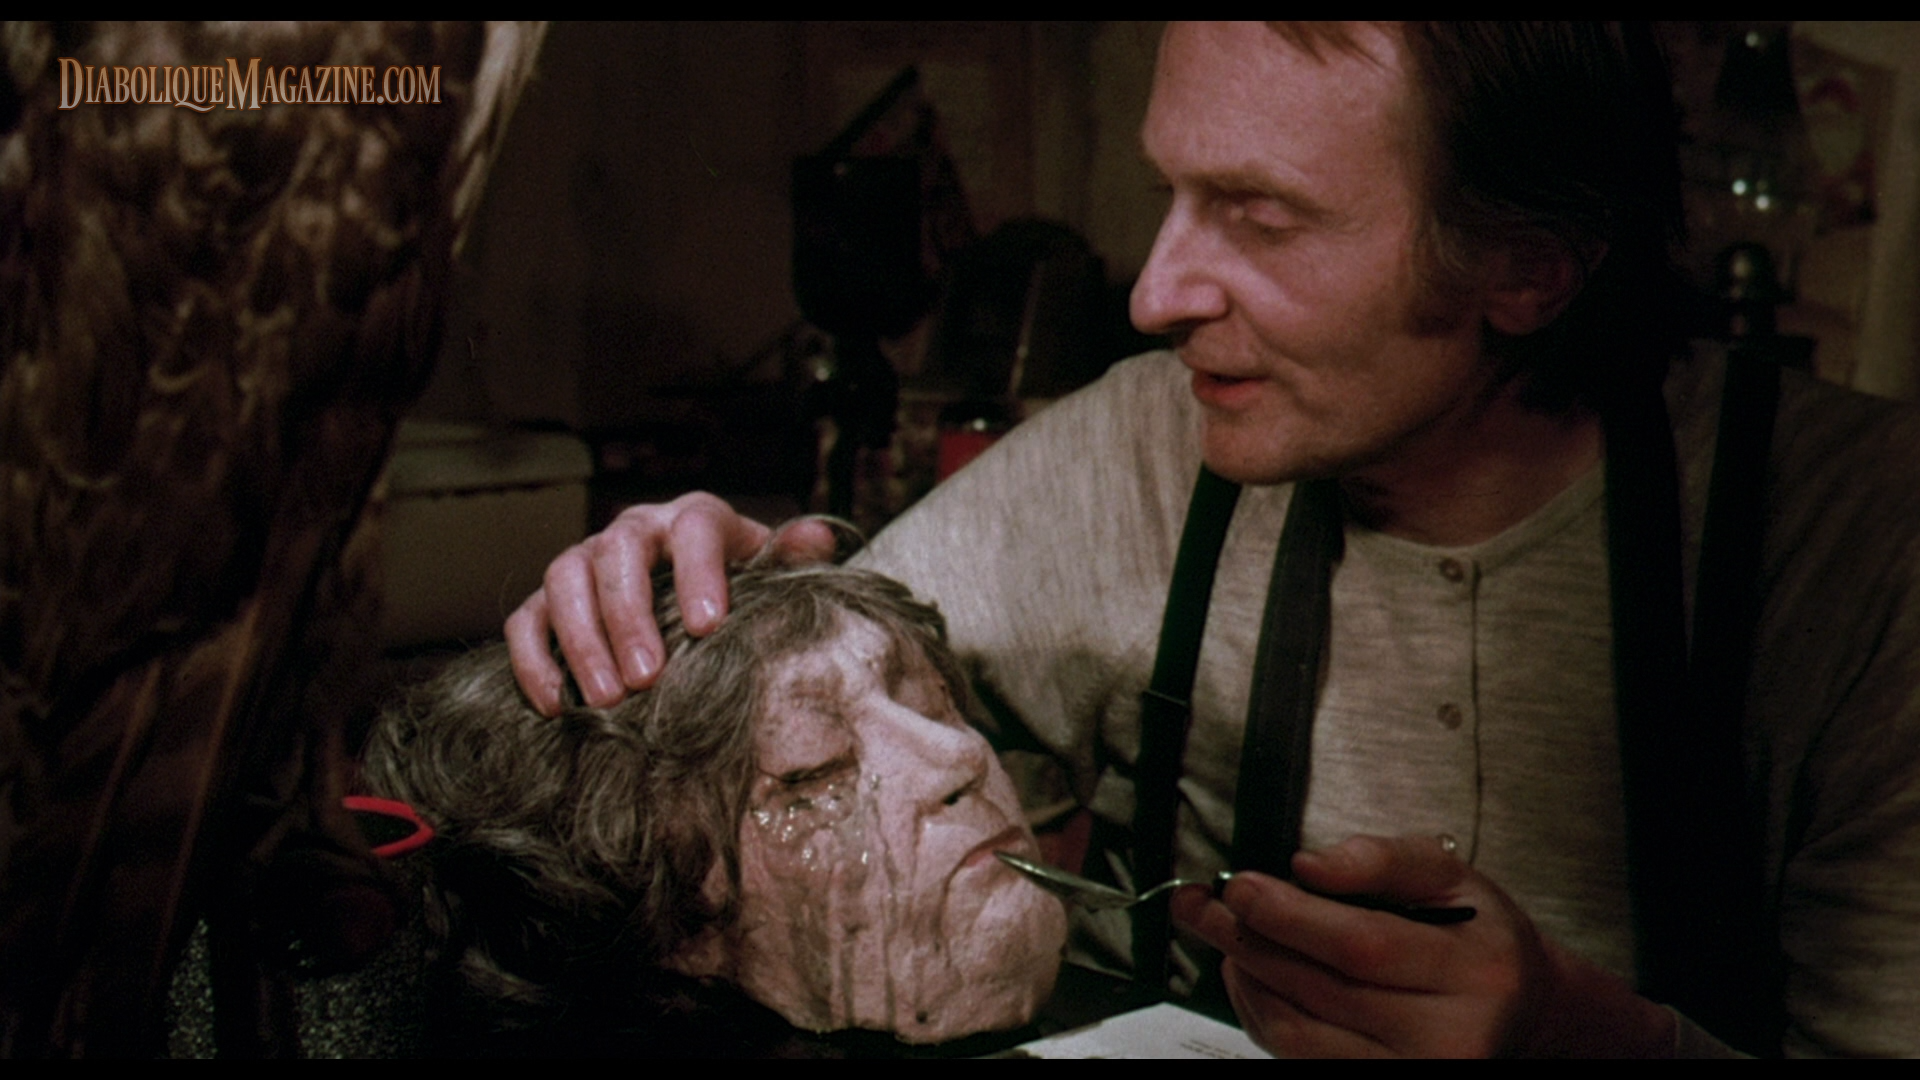 a review of the films psycho the texas chainsaw massacre and the silence of the lambs Blame hannibal lecter for the release of this repellent recreation of the true story that inspired psycho, the texas chain saw massacre, and the silence of the lambs.